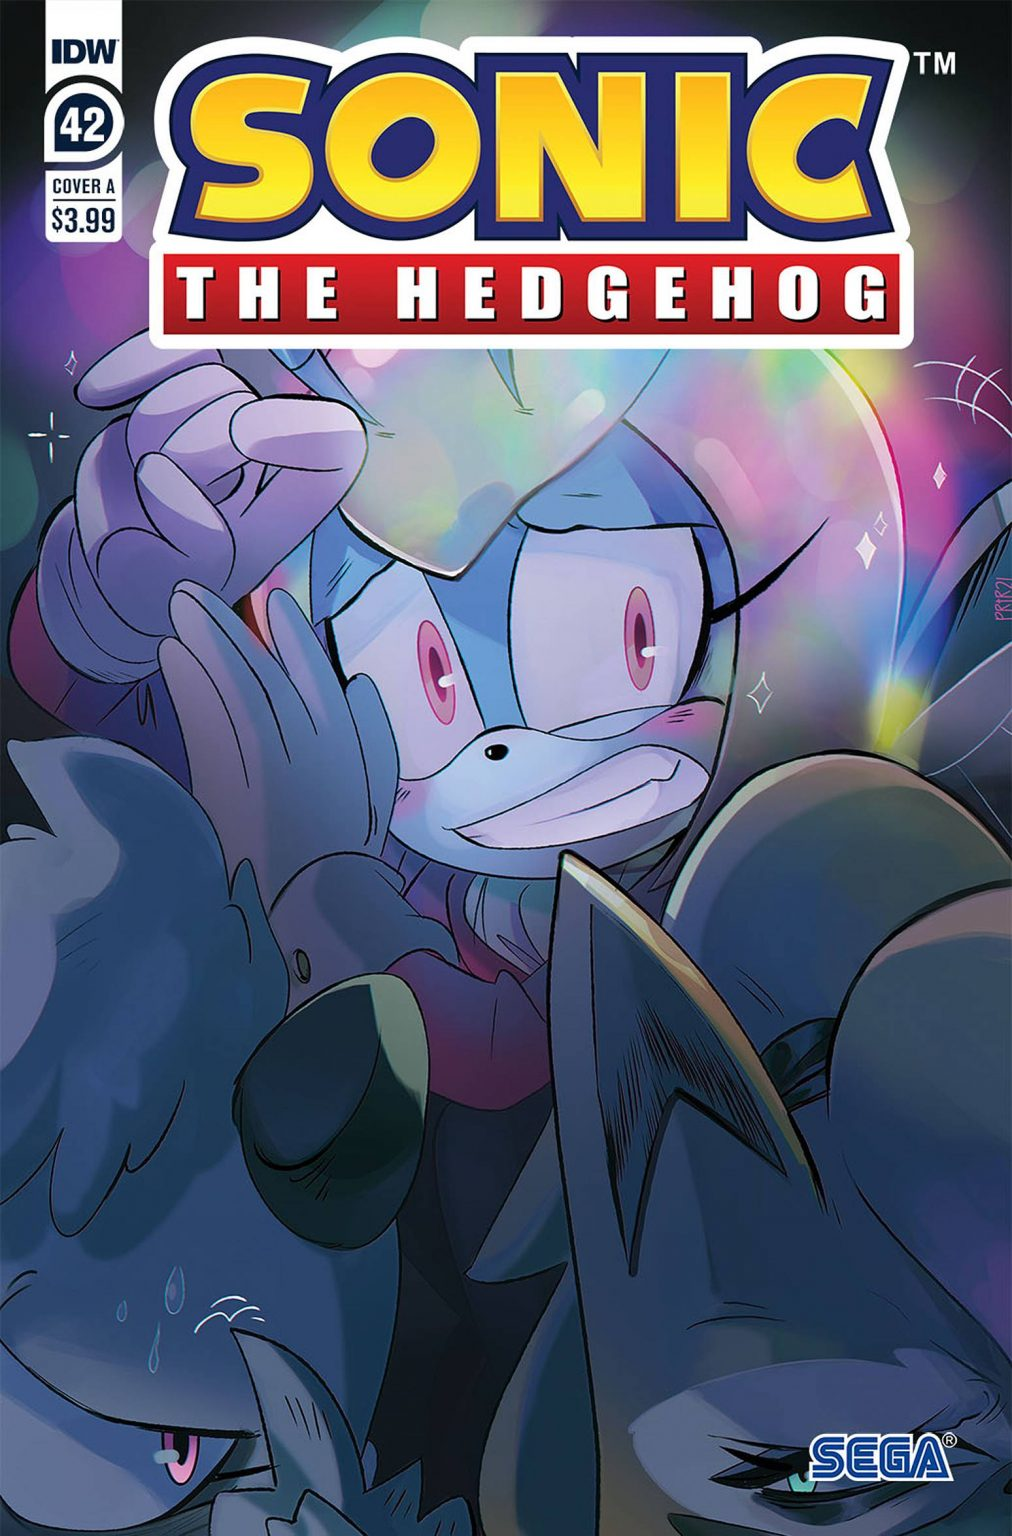 Sonic The Hedgehog #42 Cover A